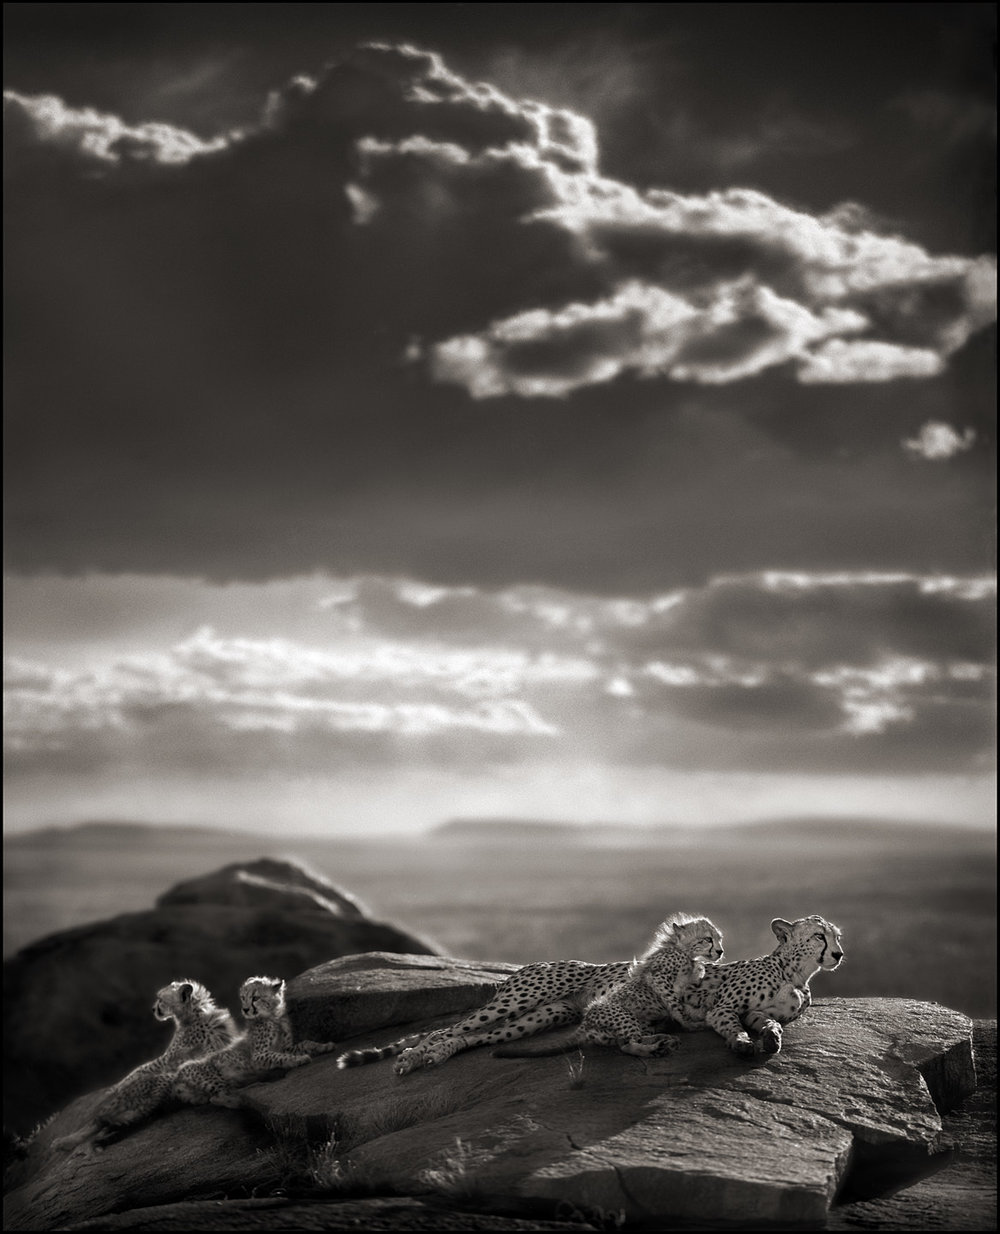 Cheetah and Cubs Lying on Rock